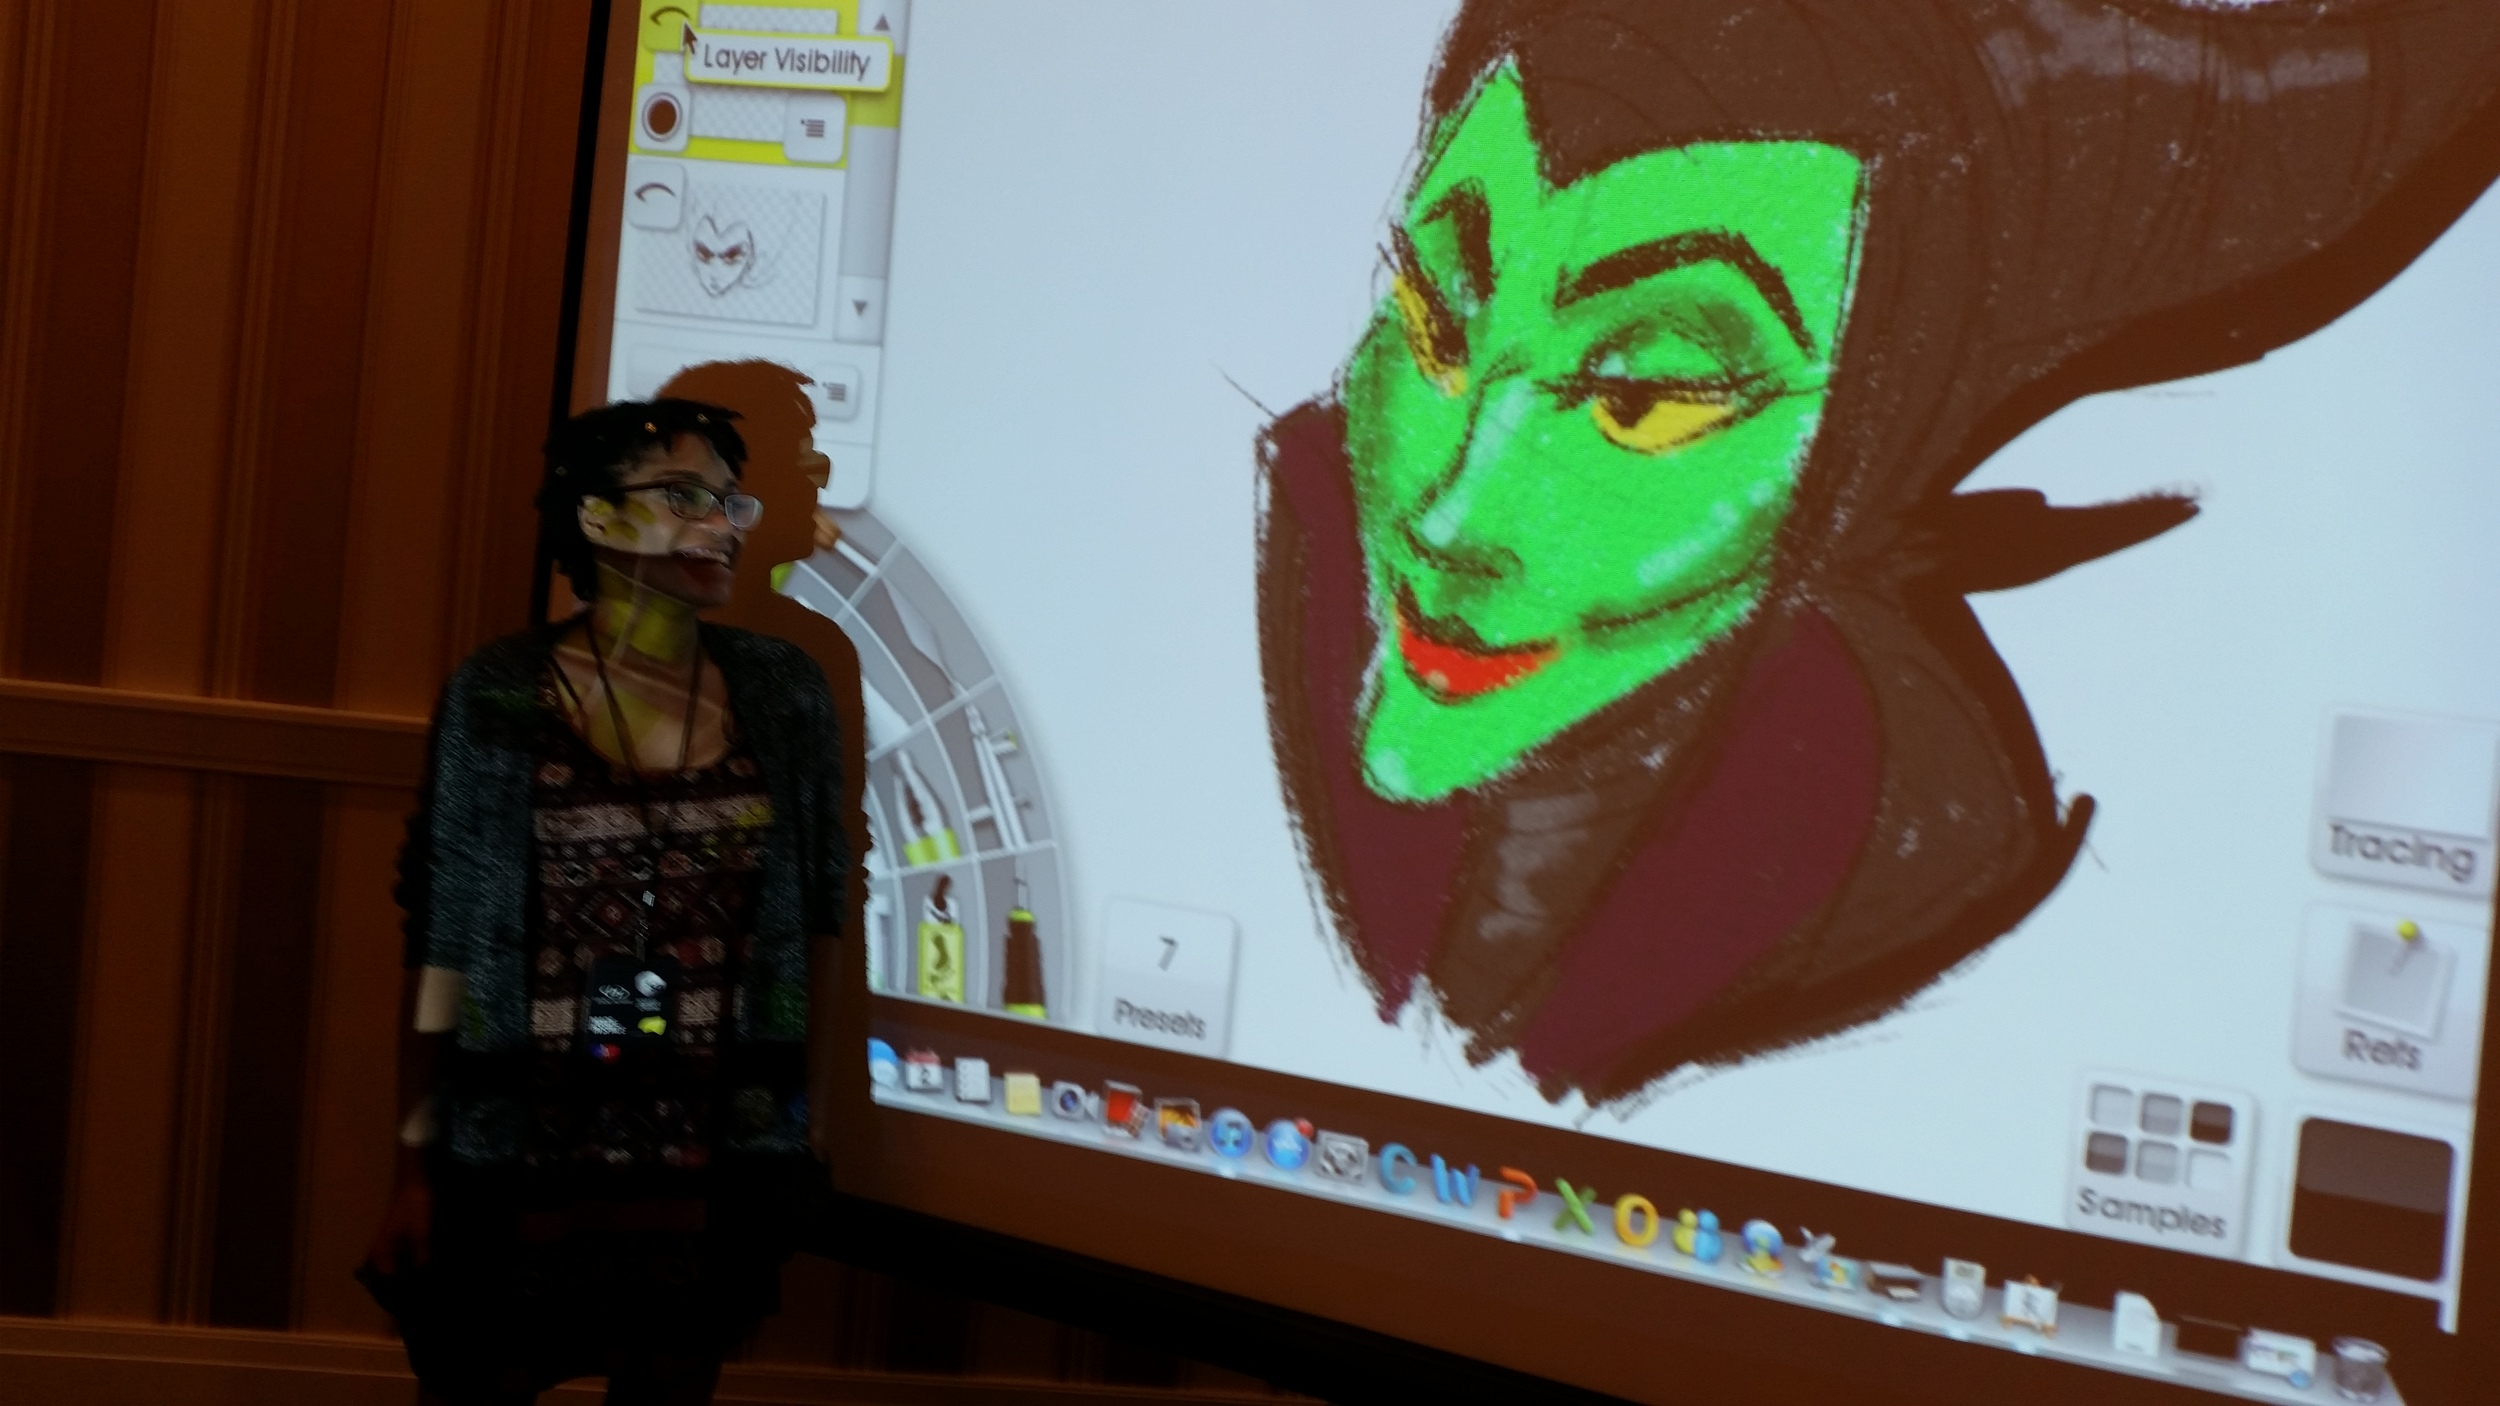 Brittany Pate showing the features of a villain with Maleficent from Sleeping Beauty as an example.